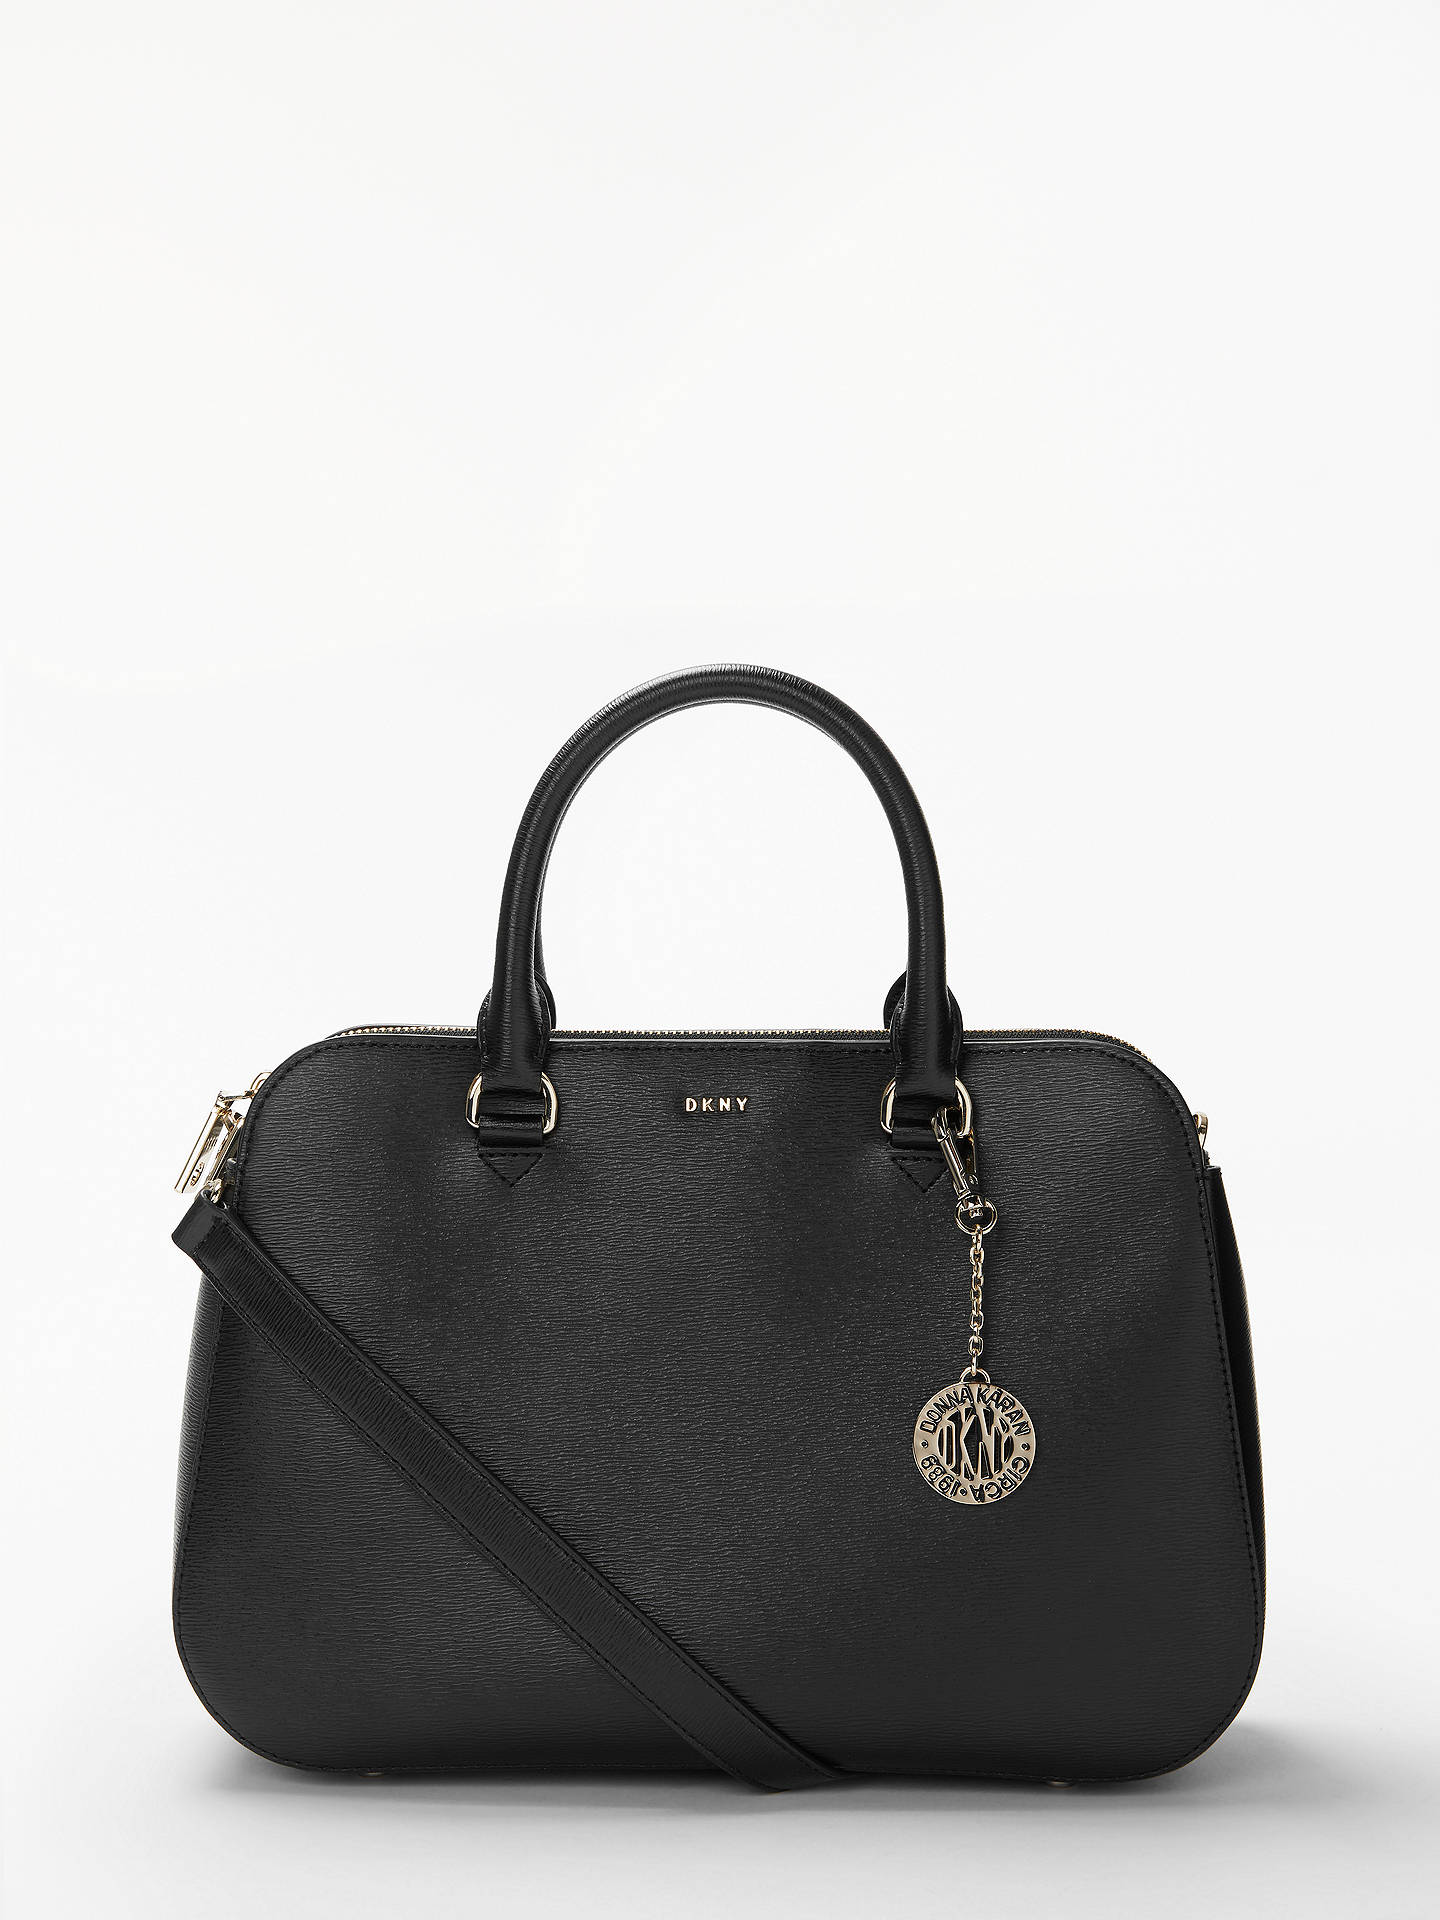 875ac5f16b94 Dkny Handbags Uk John Lewis | Stanford Center for Opportunity Policy ...